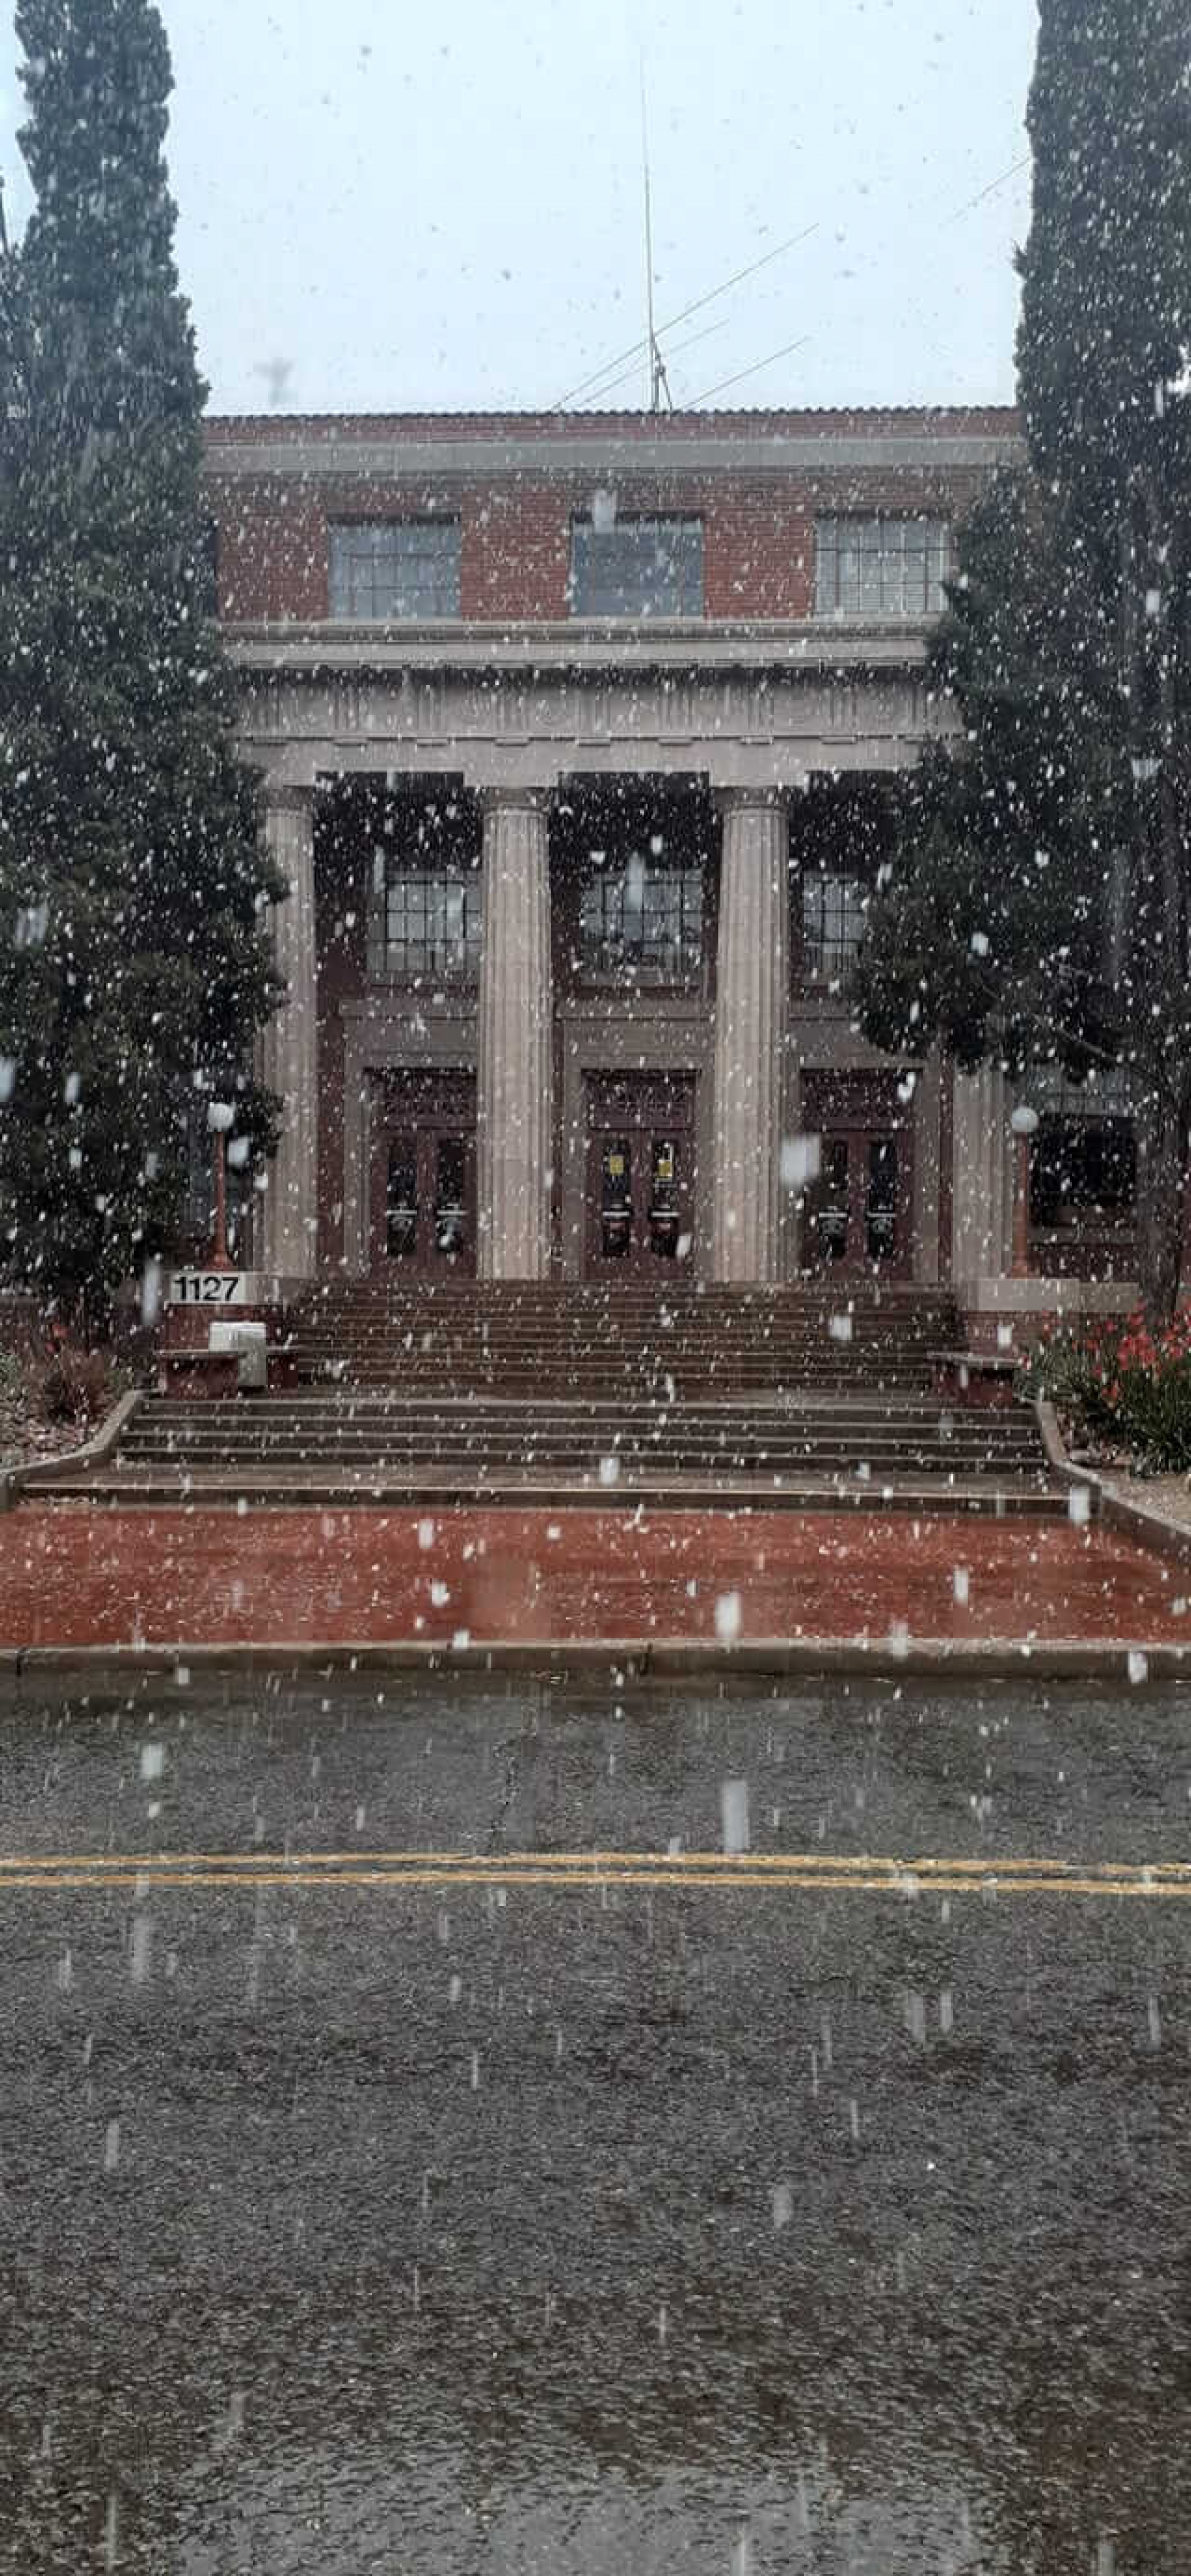 snow falling outside of a building